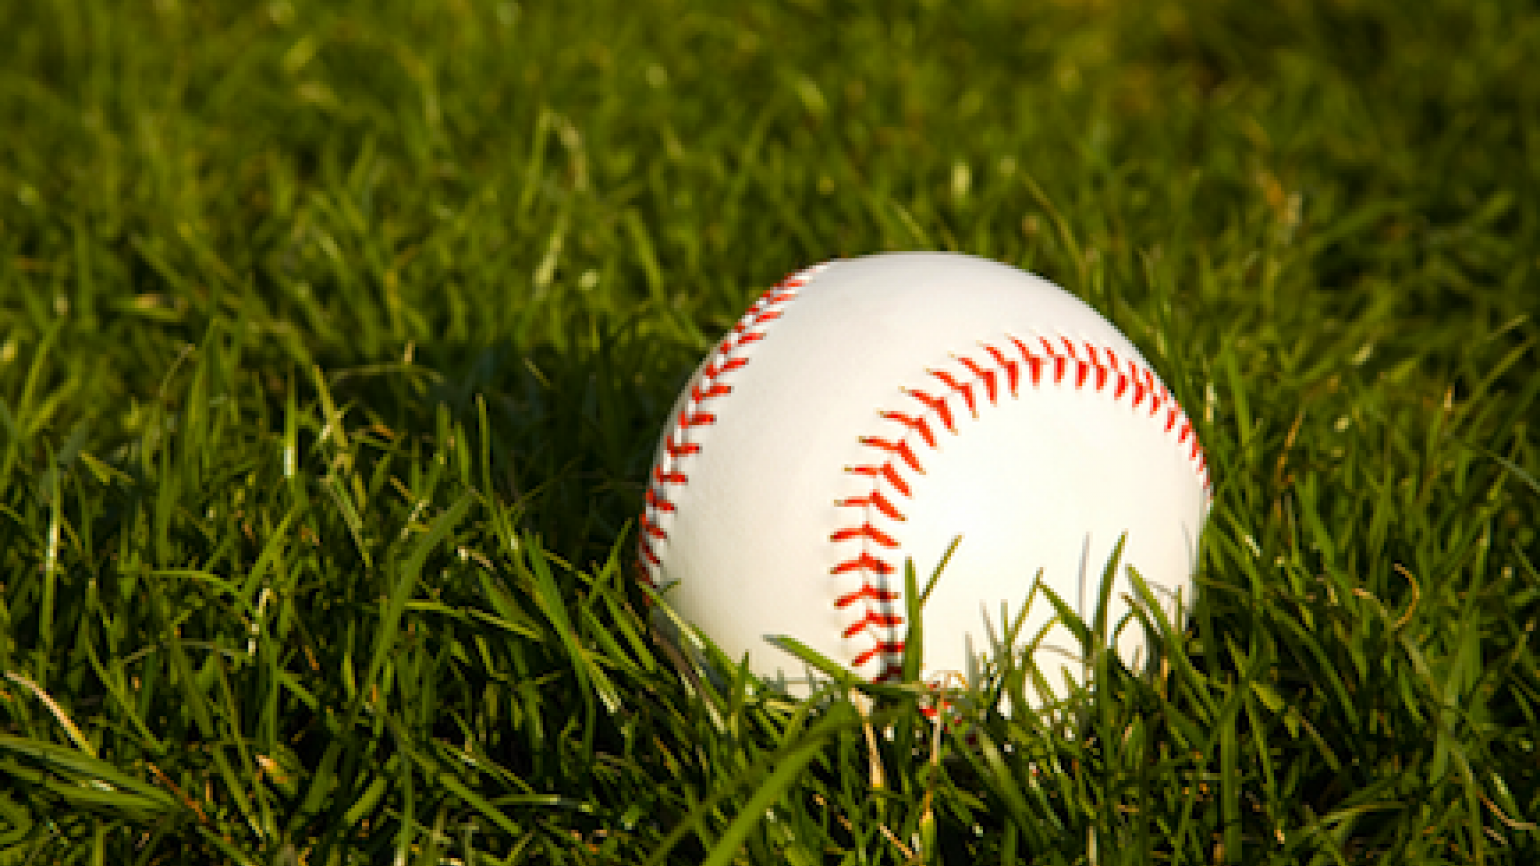 A baseball in the grass is an answered prayer.